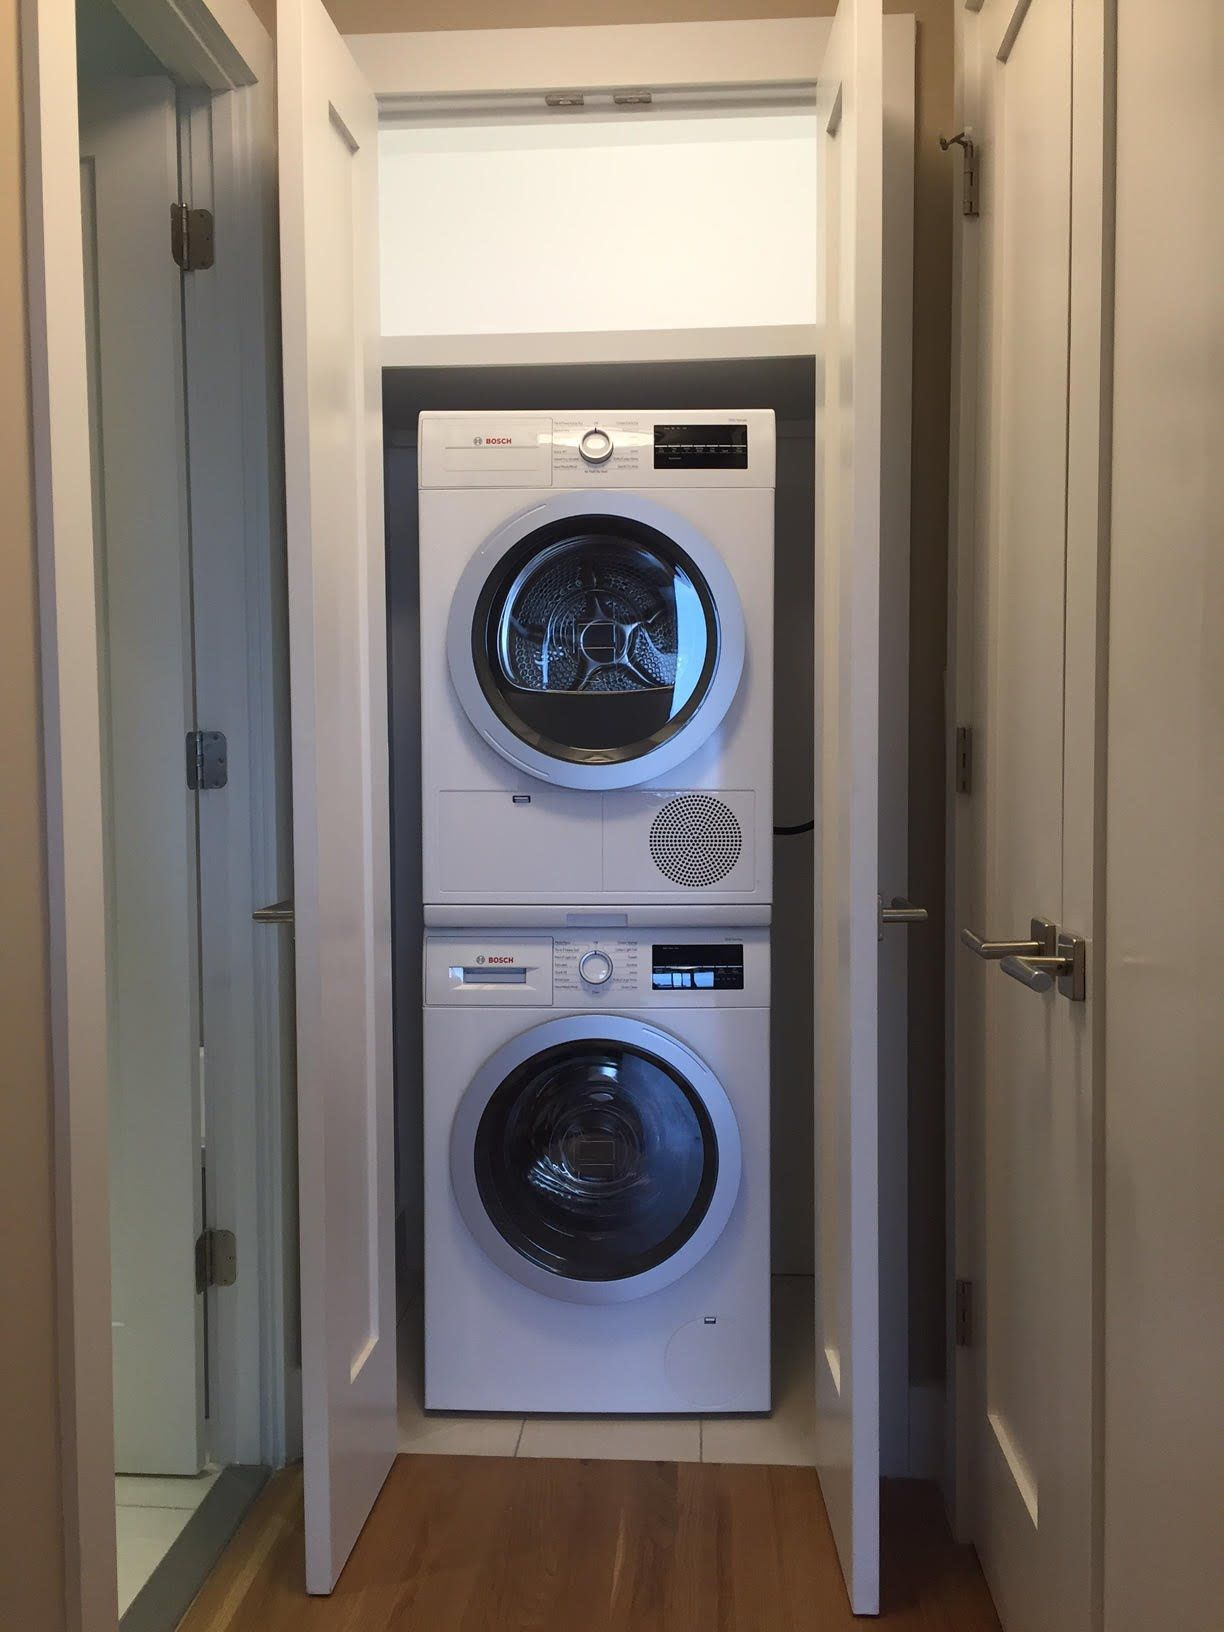 How To Fit A Washer And Dryer Into The Smallest Of Spaces Laundry Room Remodel Small Laundry Rooms Perfect Laundry Room